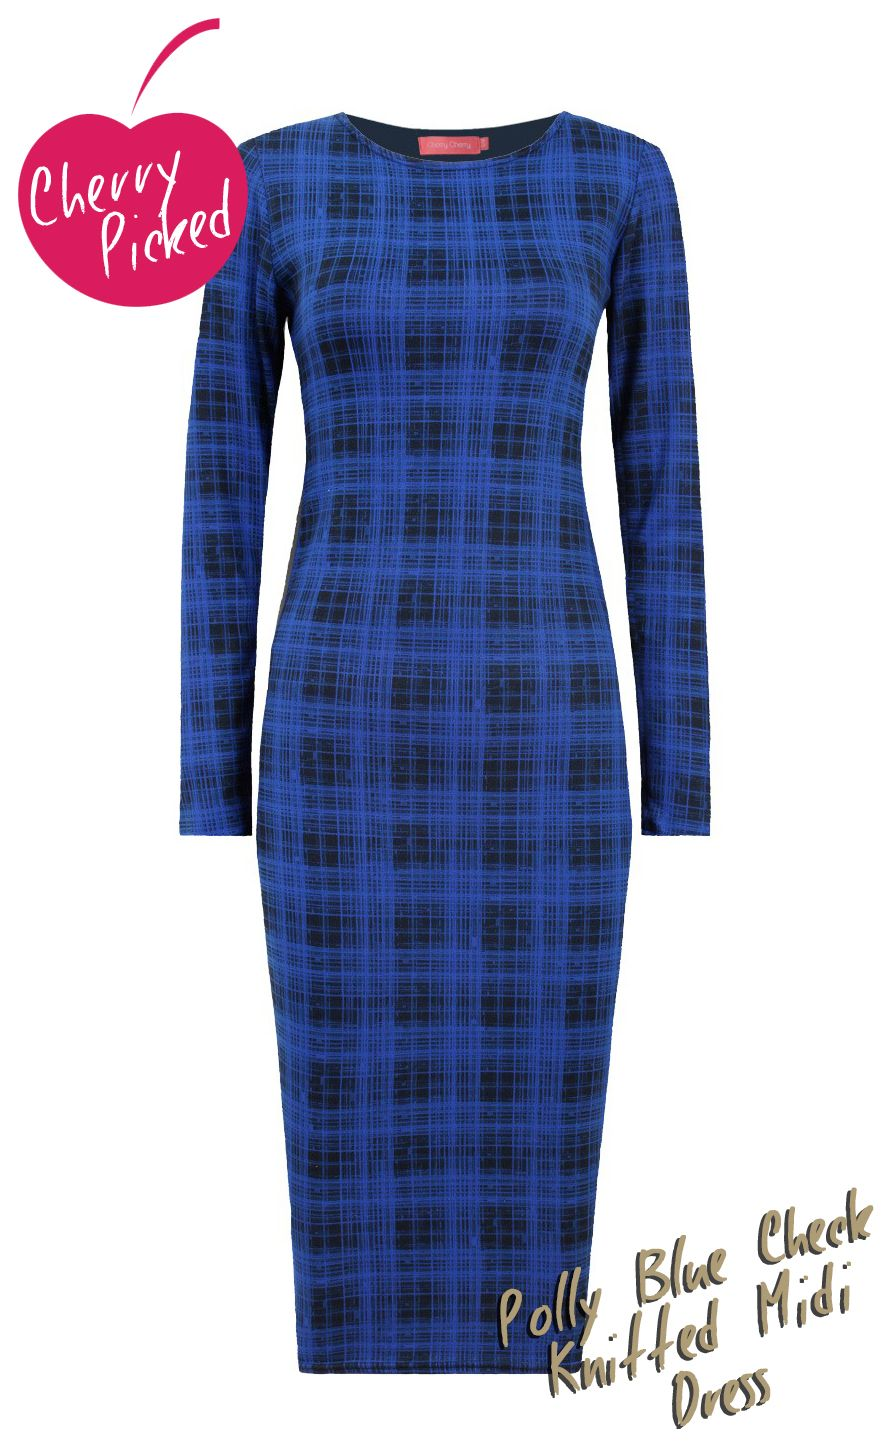 Looking for a new season dress to take you from work to bars without compromising on warmth or style...look now further than this new in midi! In a soft stretch knitted material with long sleeves and all in this seasons checks - it's the perfect option! In blue, red or coffee! #cherrycherry   #cherrypicked   #check   #mididress   #checkeddress   #checkprint